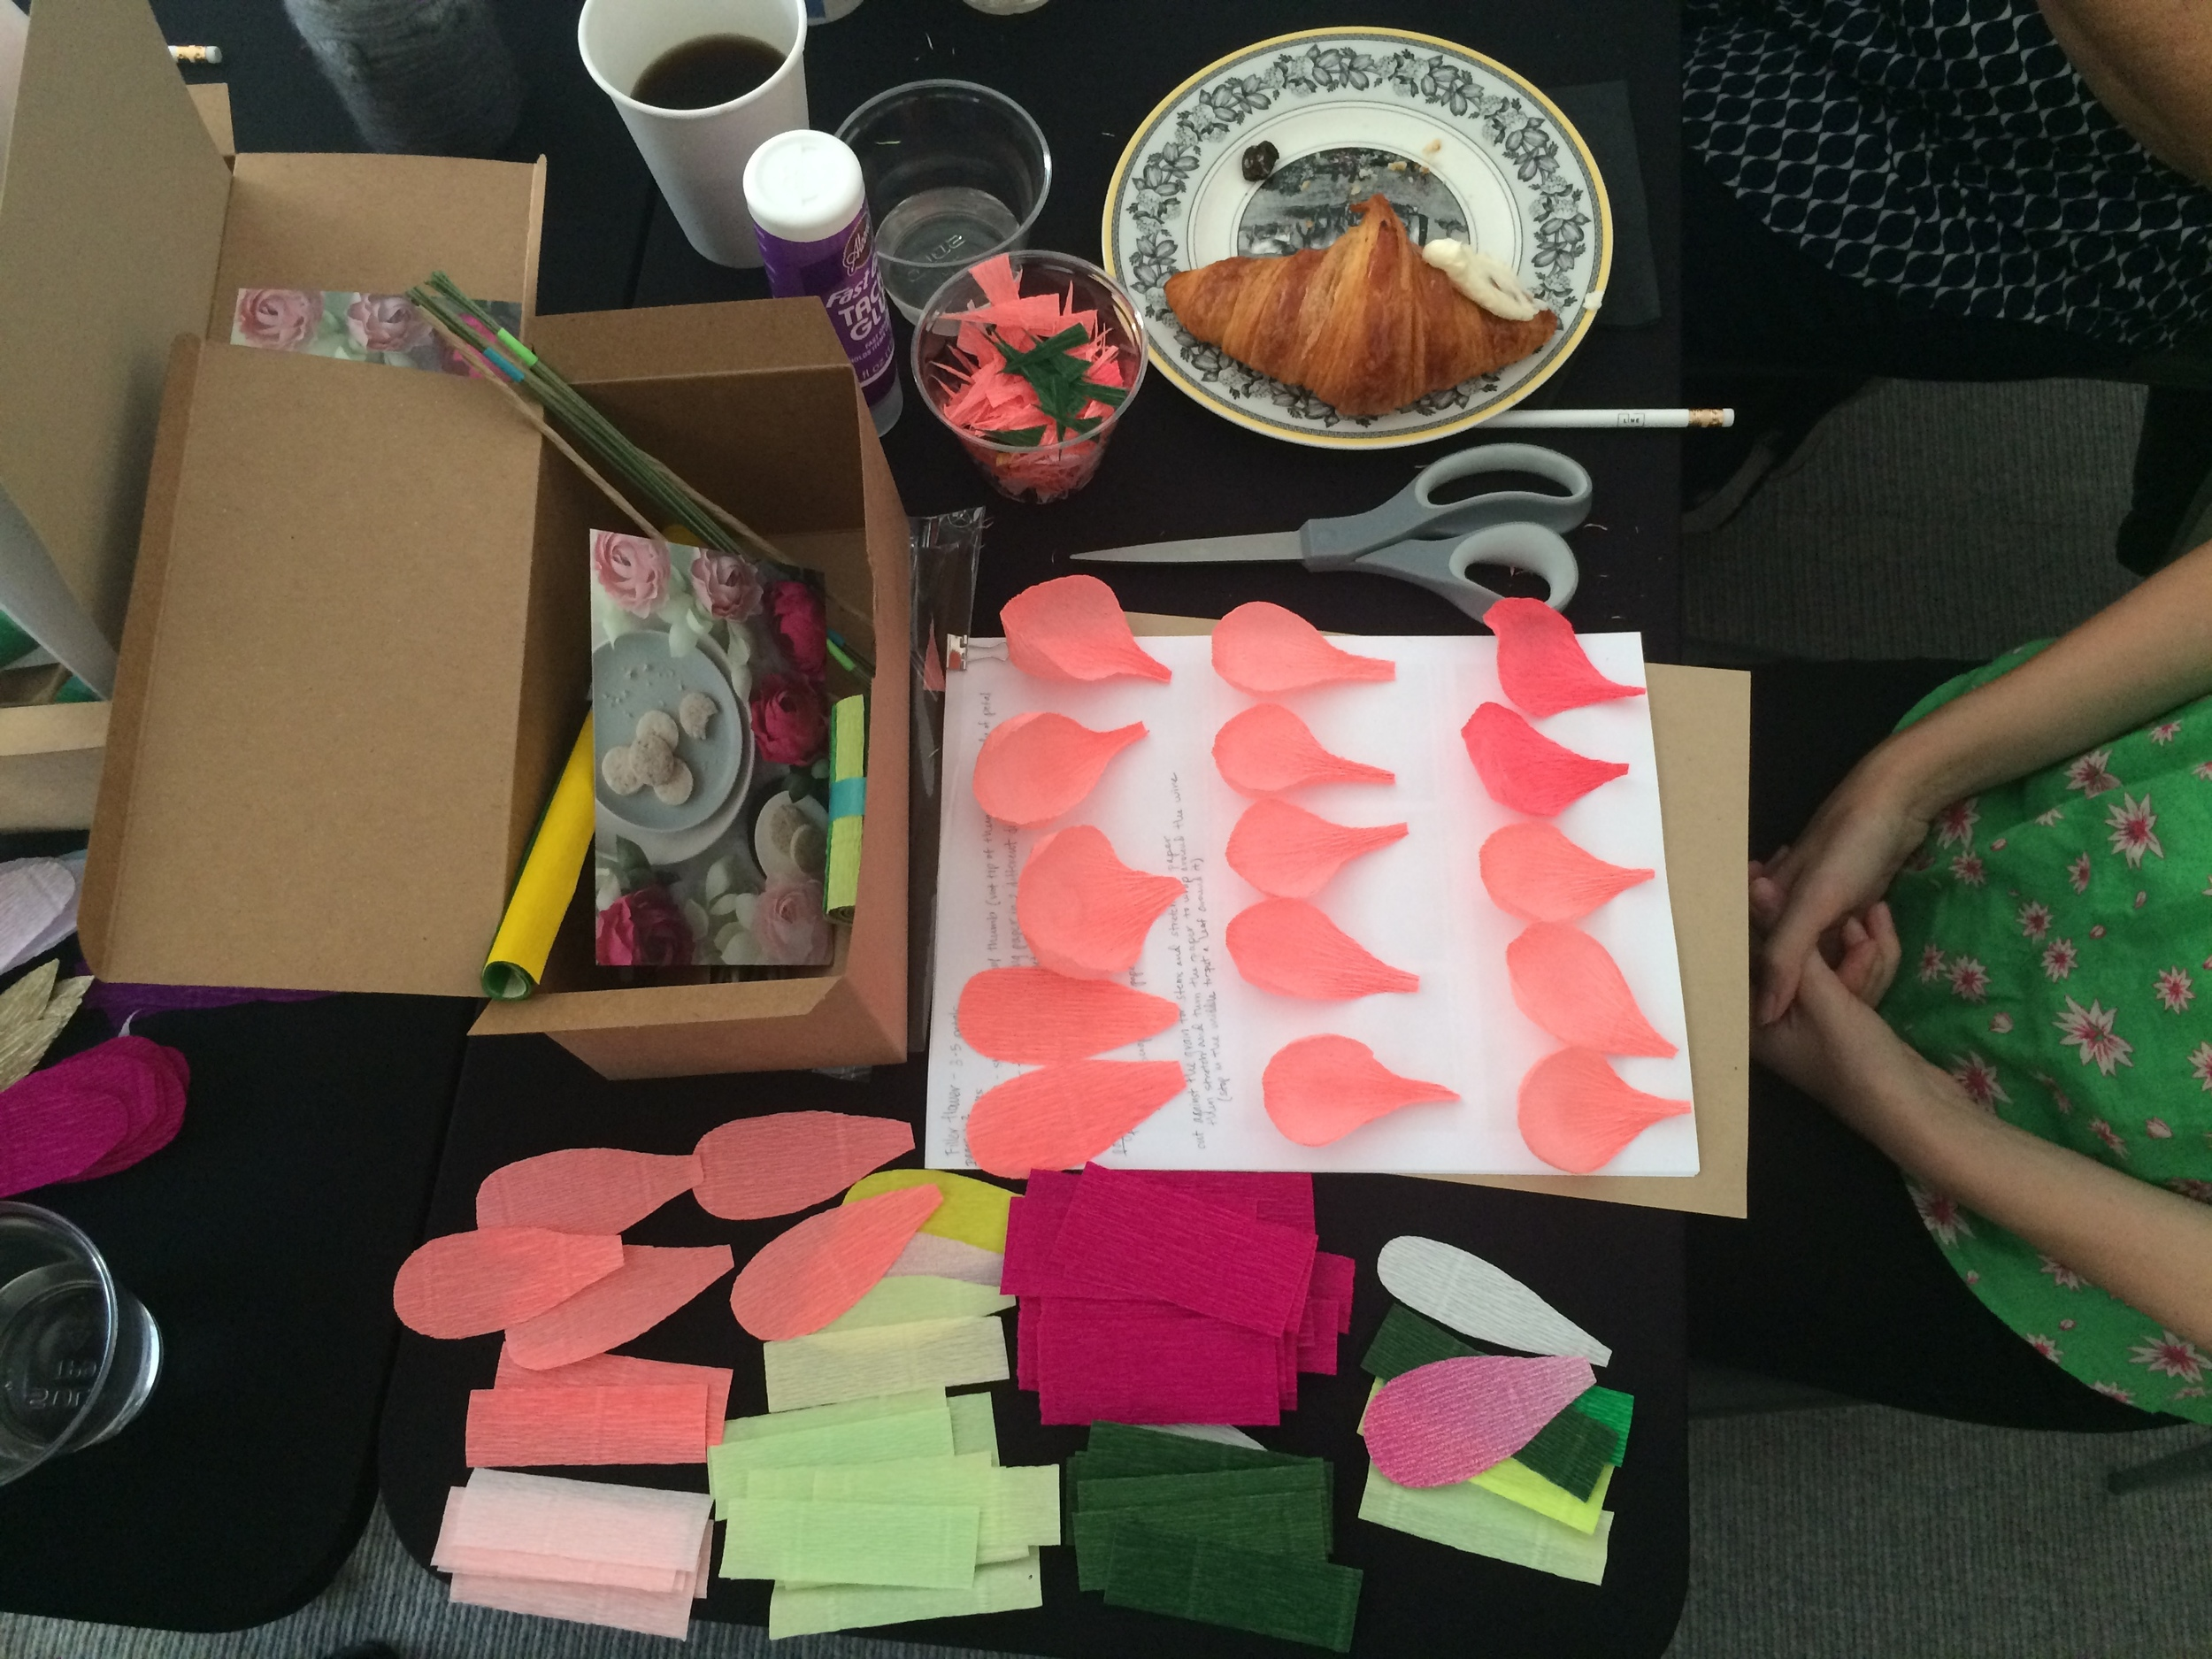 Each workshop attendee gets a BITA crafting  box,  a  carte fini  crepe paper swatch sheet,  yummy snacks and a paper flower guide where they can also take notes of their own!